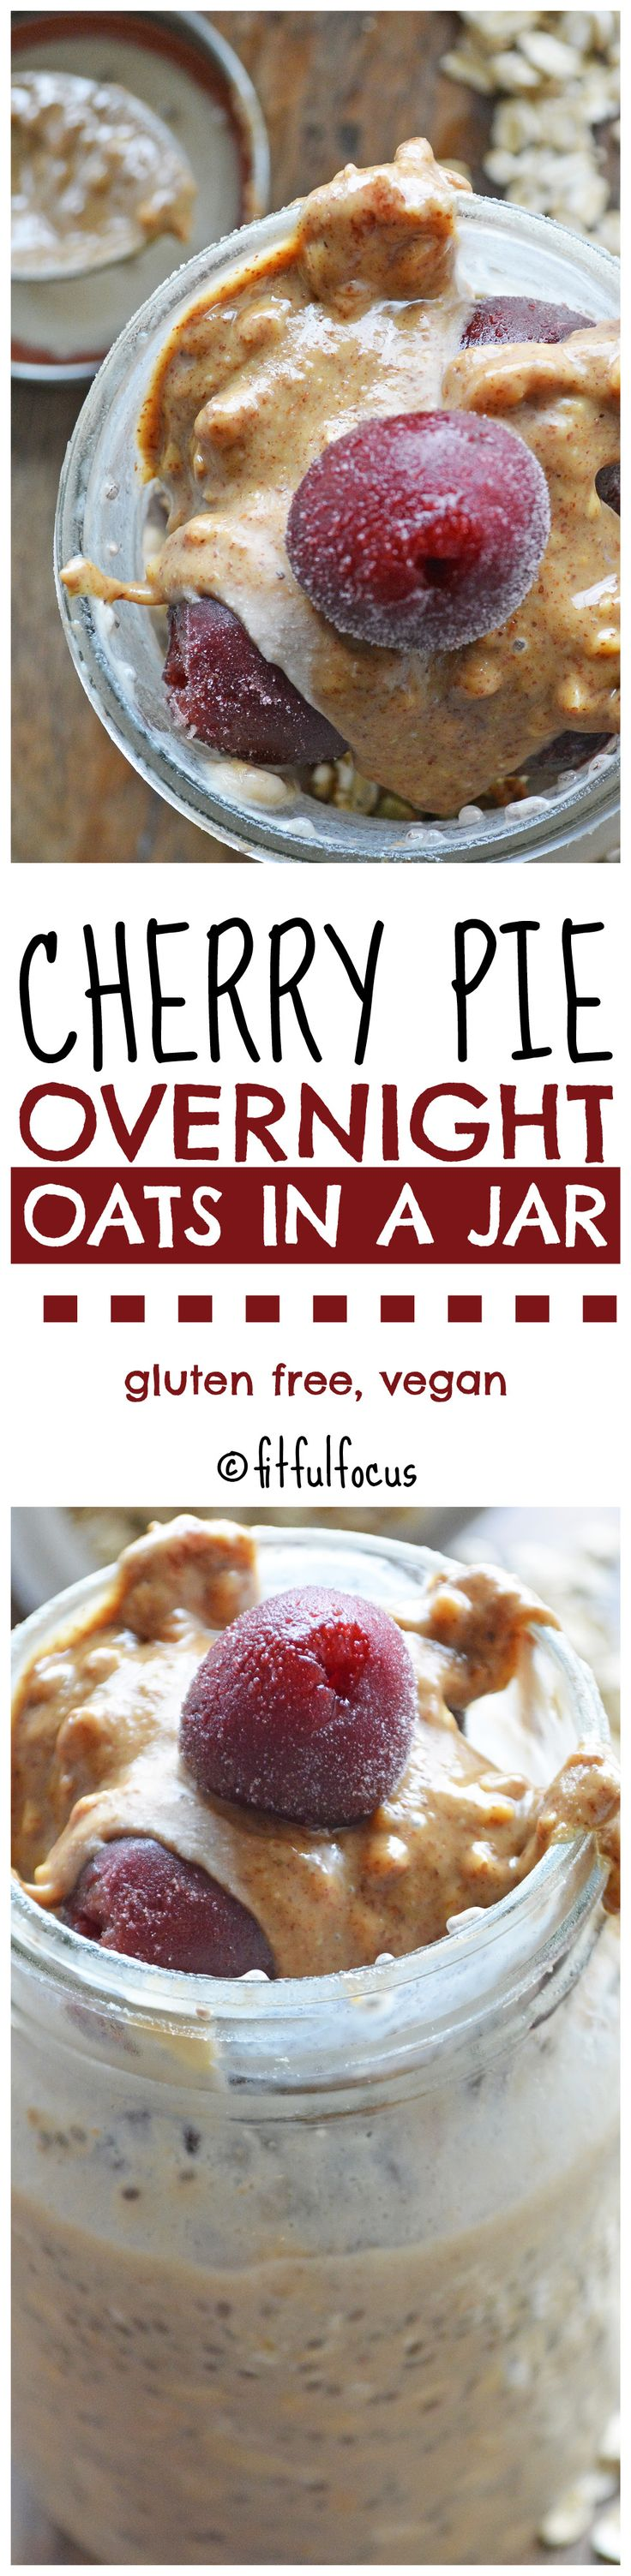 31 Best Recipes Pears Images On Pinterest Postres And Quaker Instant Oatmeal Jar 1 Carton 12 Pcs P Cherry Pie Overnight Oats Gluten Free Vegan